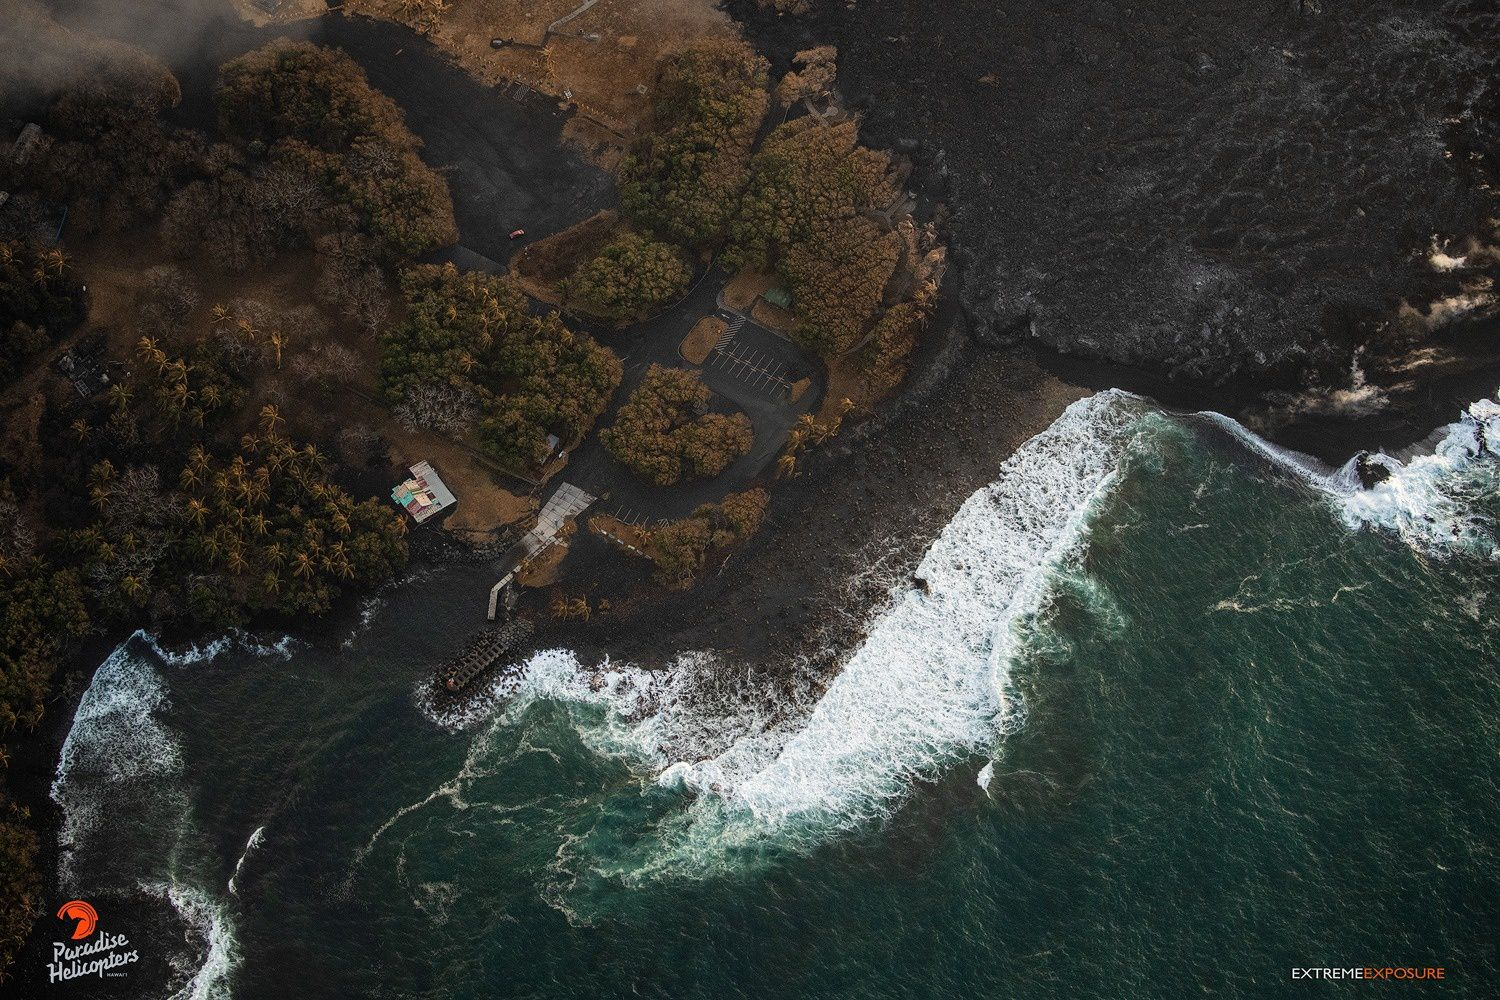 Kilauea East Rift Zone - Position of the Lava front relative to the Pohoiki Boat ramp - Photo Bruce Omori